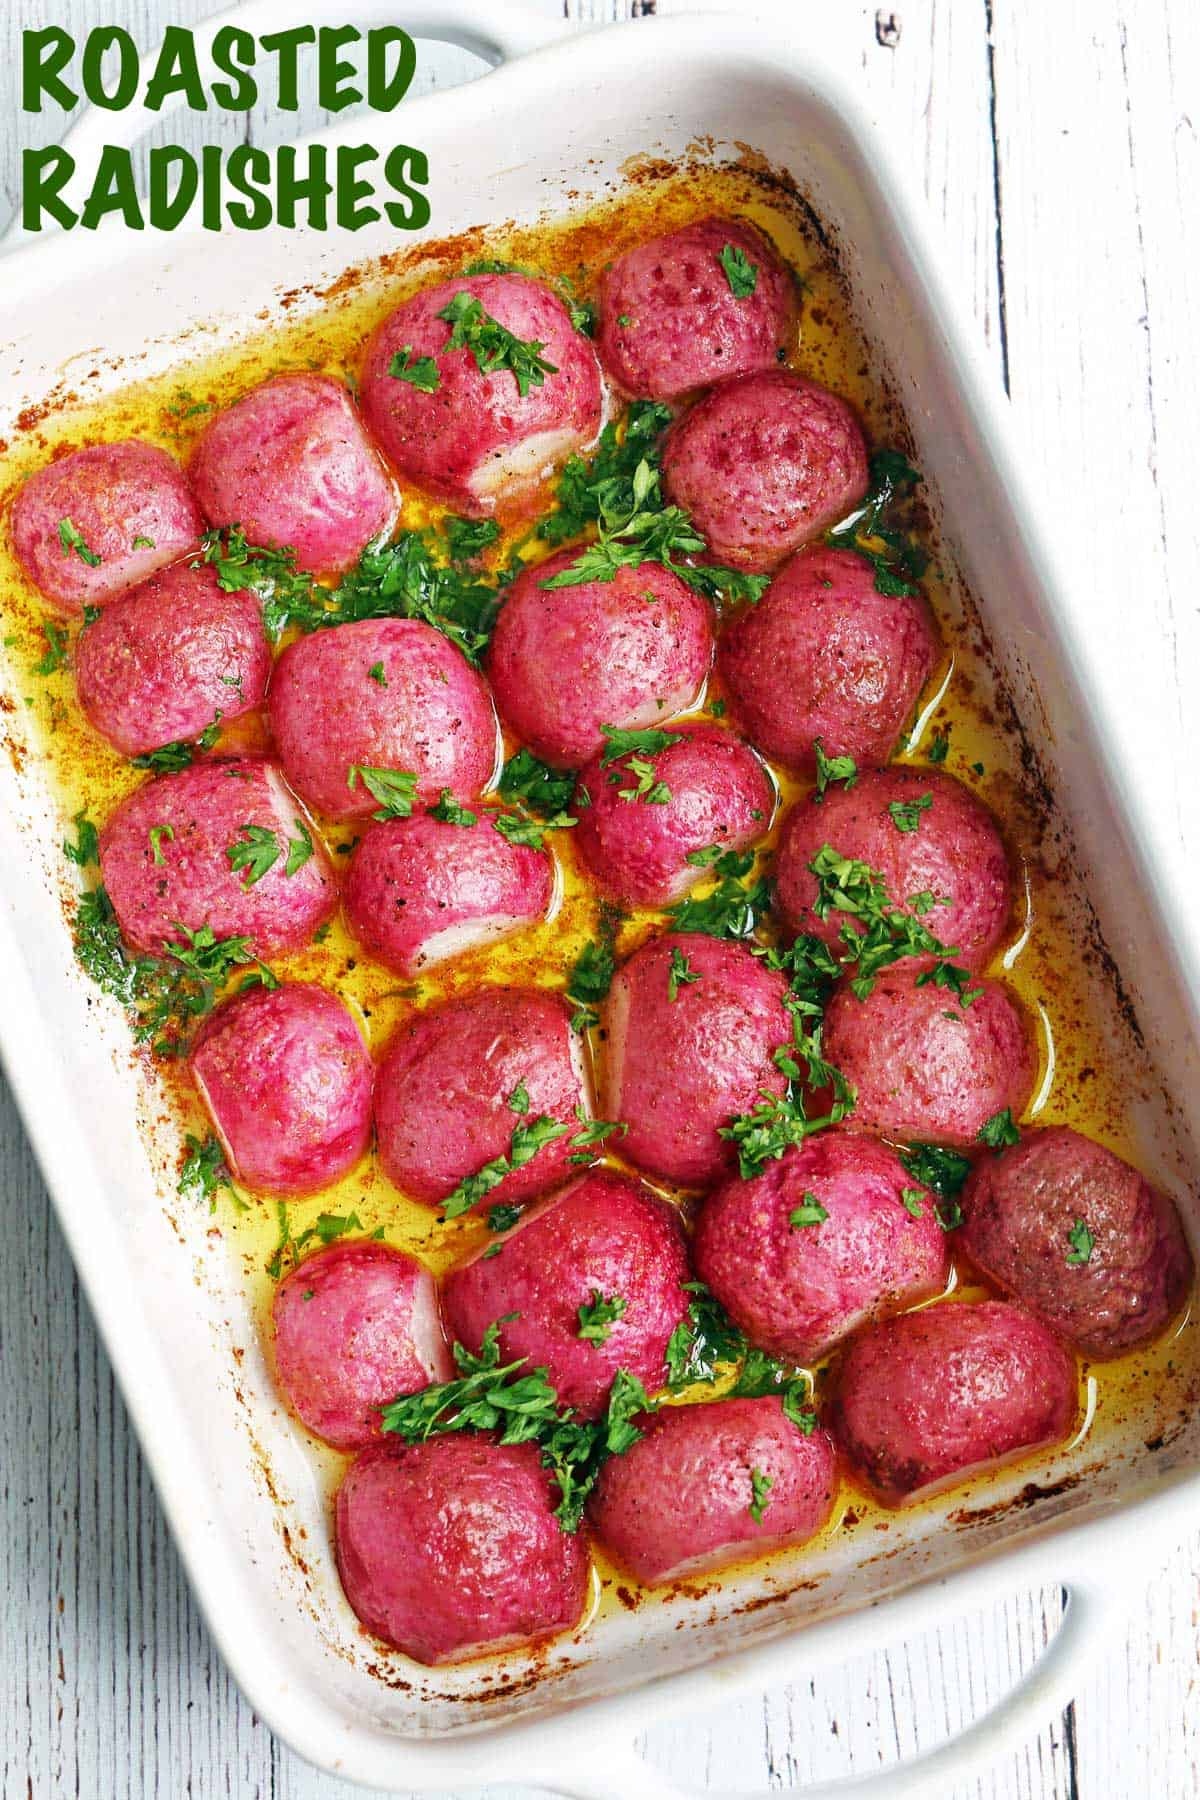 Roasted radishes served in a white baking dish.